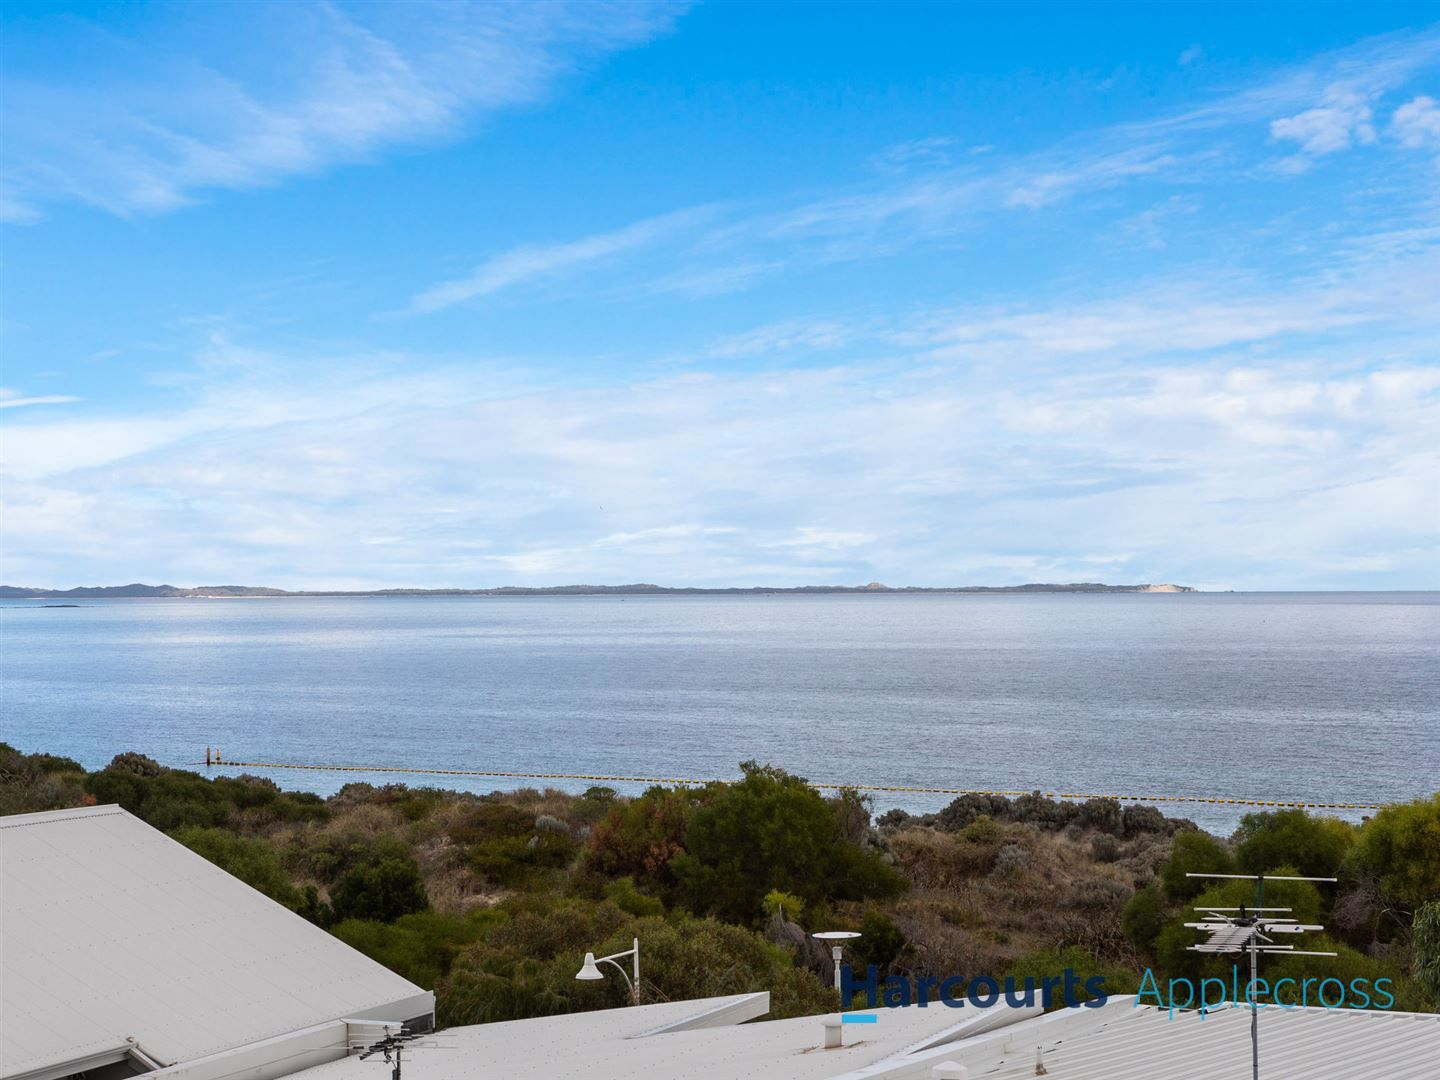 17/19 Perlinte View, North Coogee WA 6163, Image 1